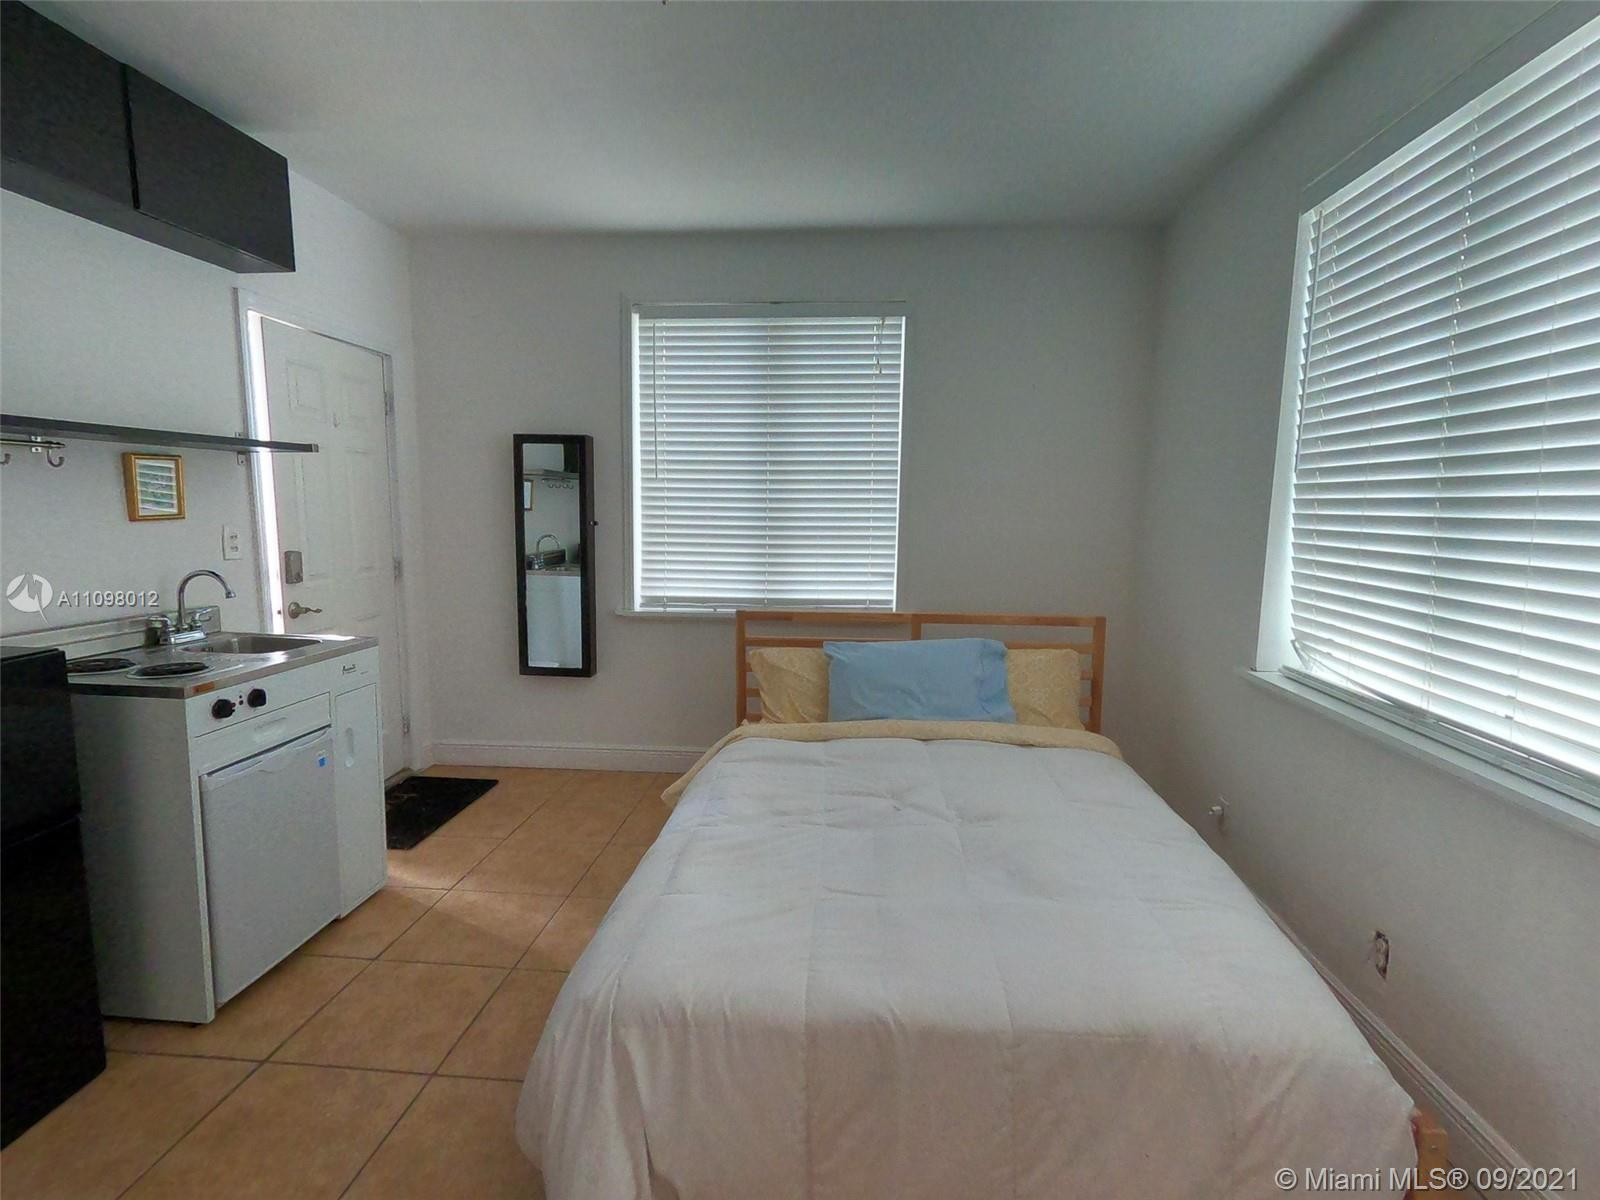 Enchanted studio/efficiency on a second floor. Has plenty of natural light and it is all about location. The unit comes with a walking-closet, kitchenette, full bathroom, garage, great location and security.